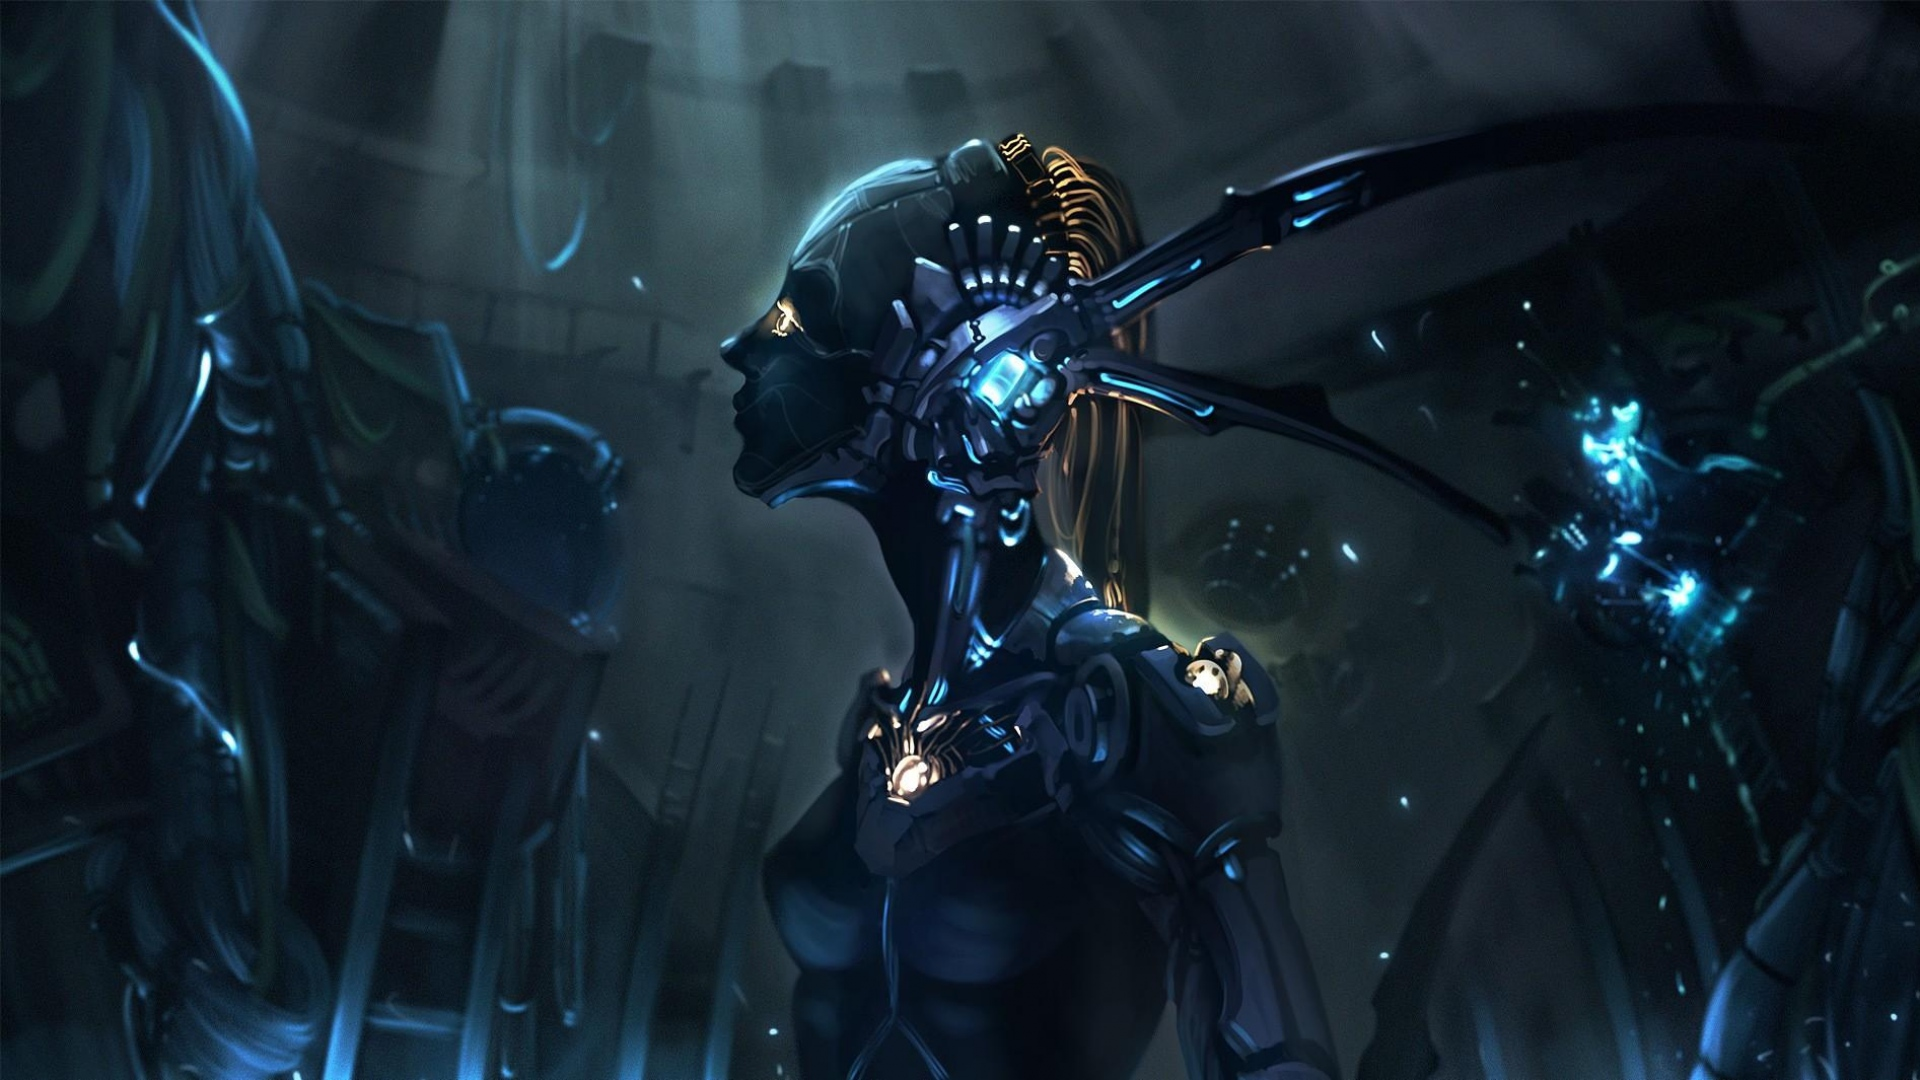 download wallpaper 1920x1080 robot, cyborg, mechanism, girl full hd